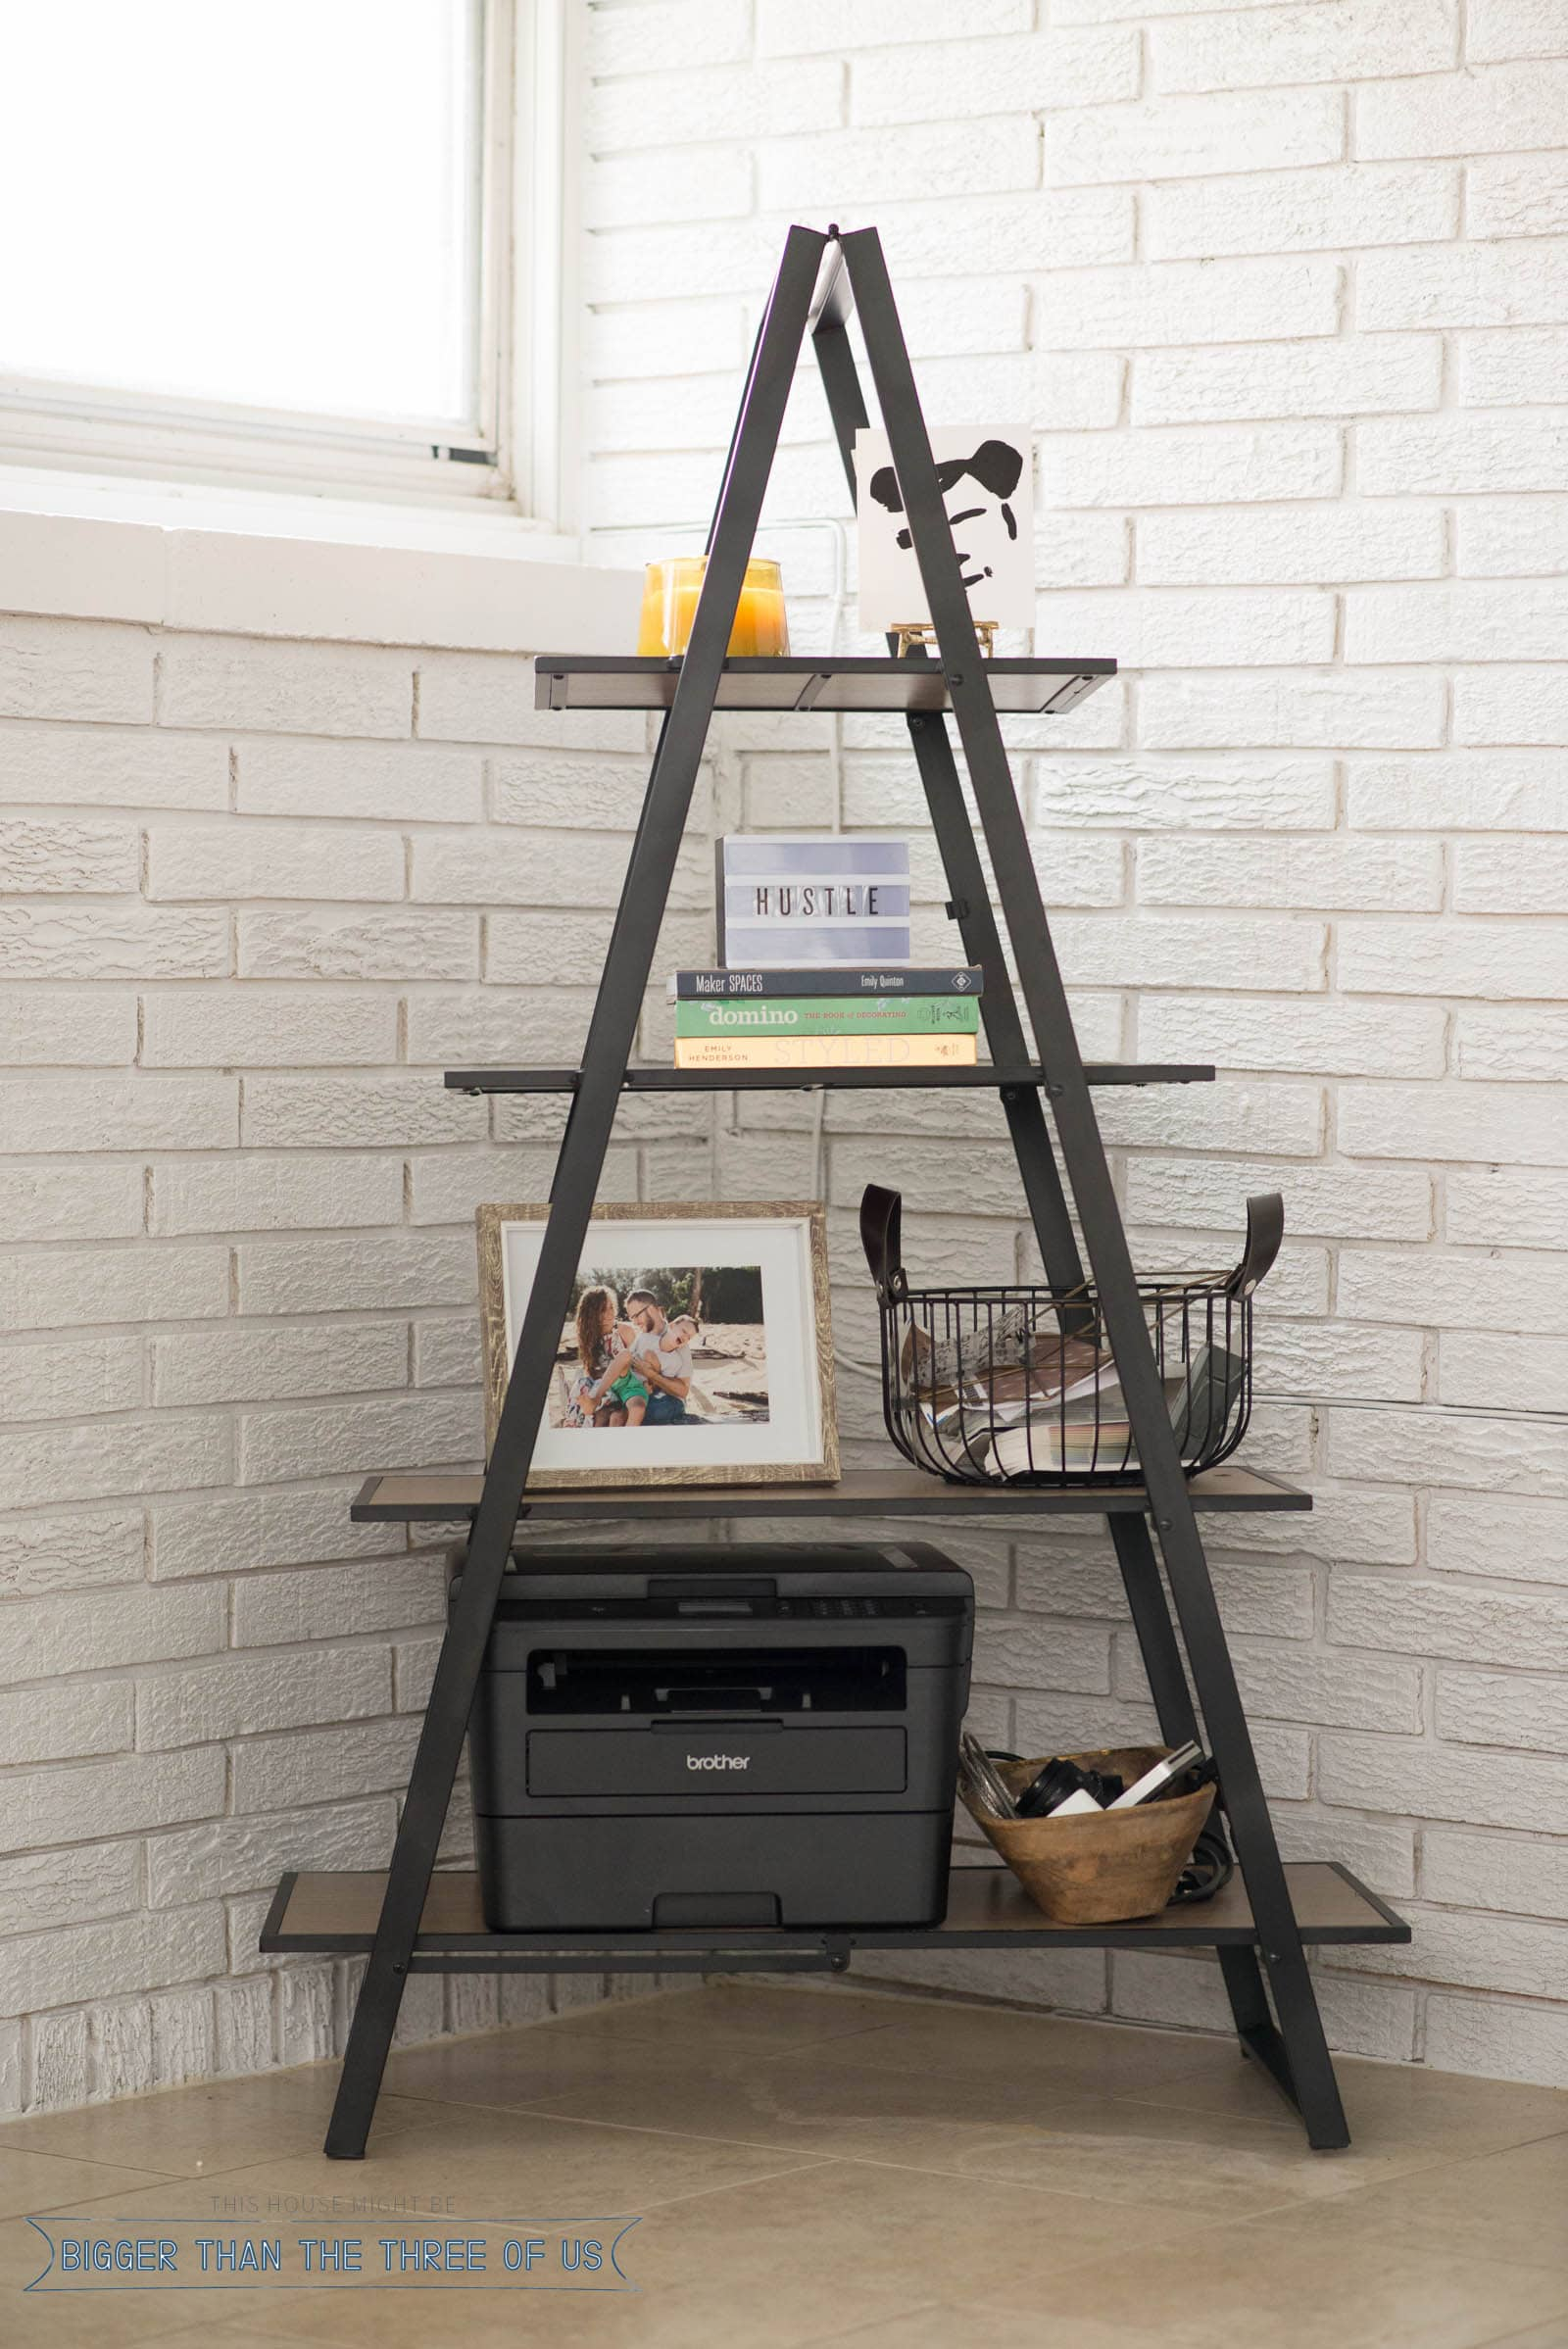 Close-up of A frame shelf in office with printer, basket and office decor styled on the shelves.